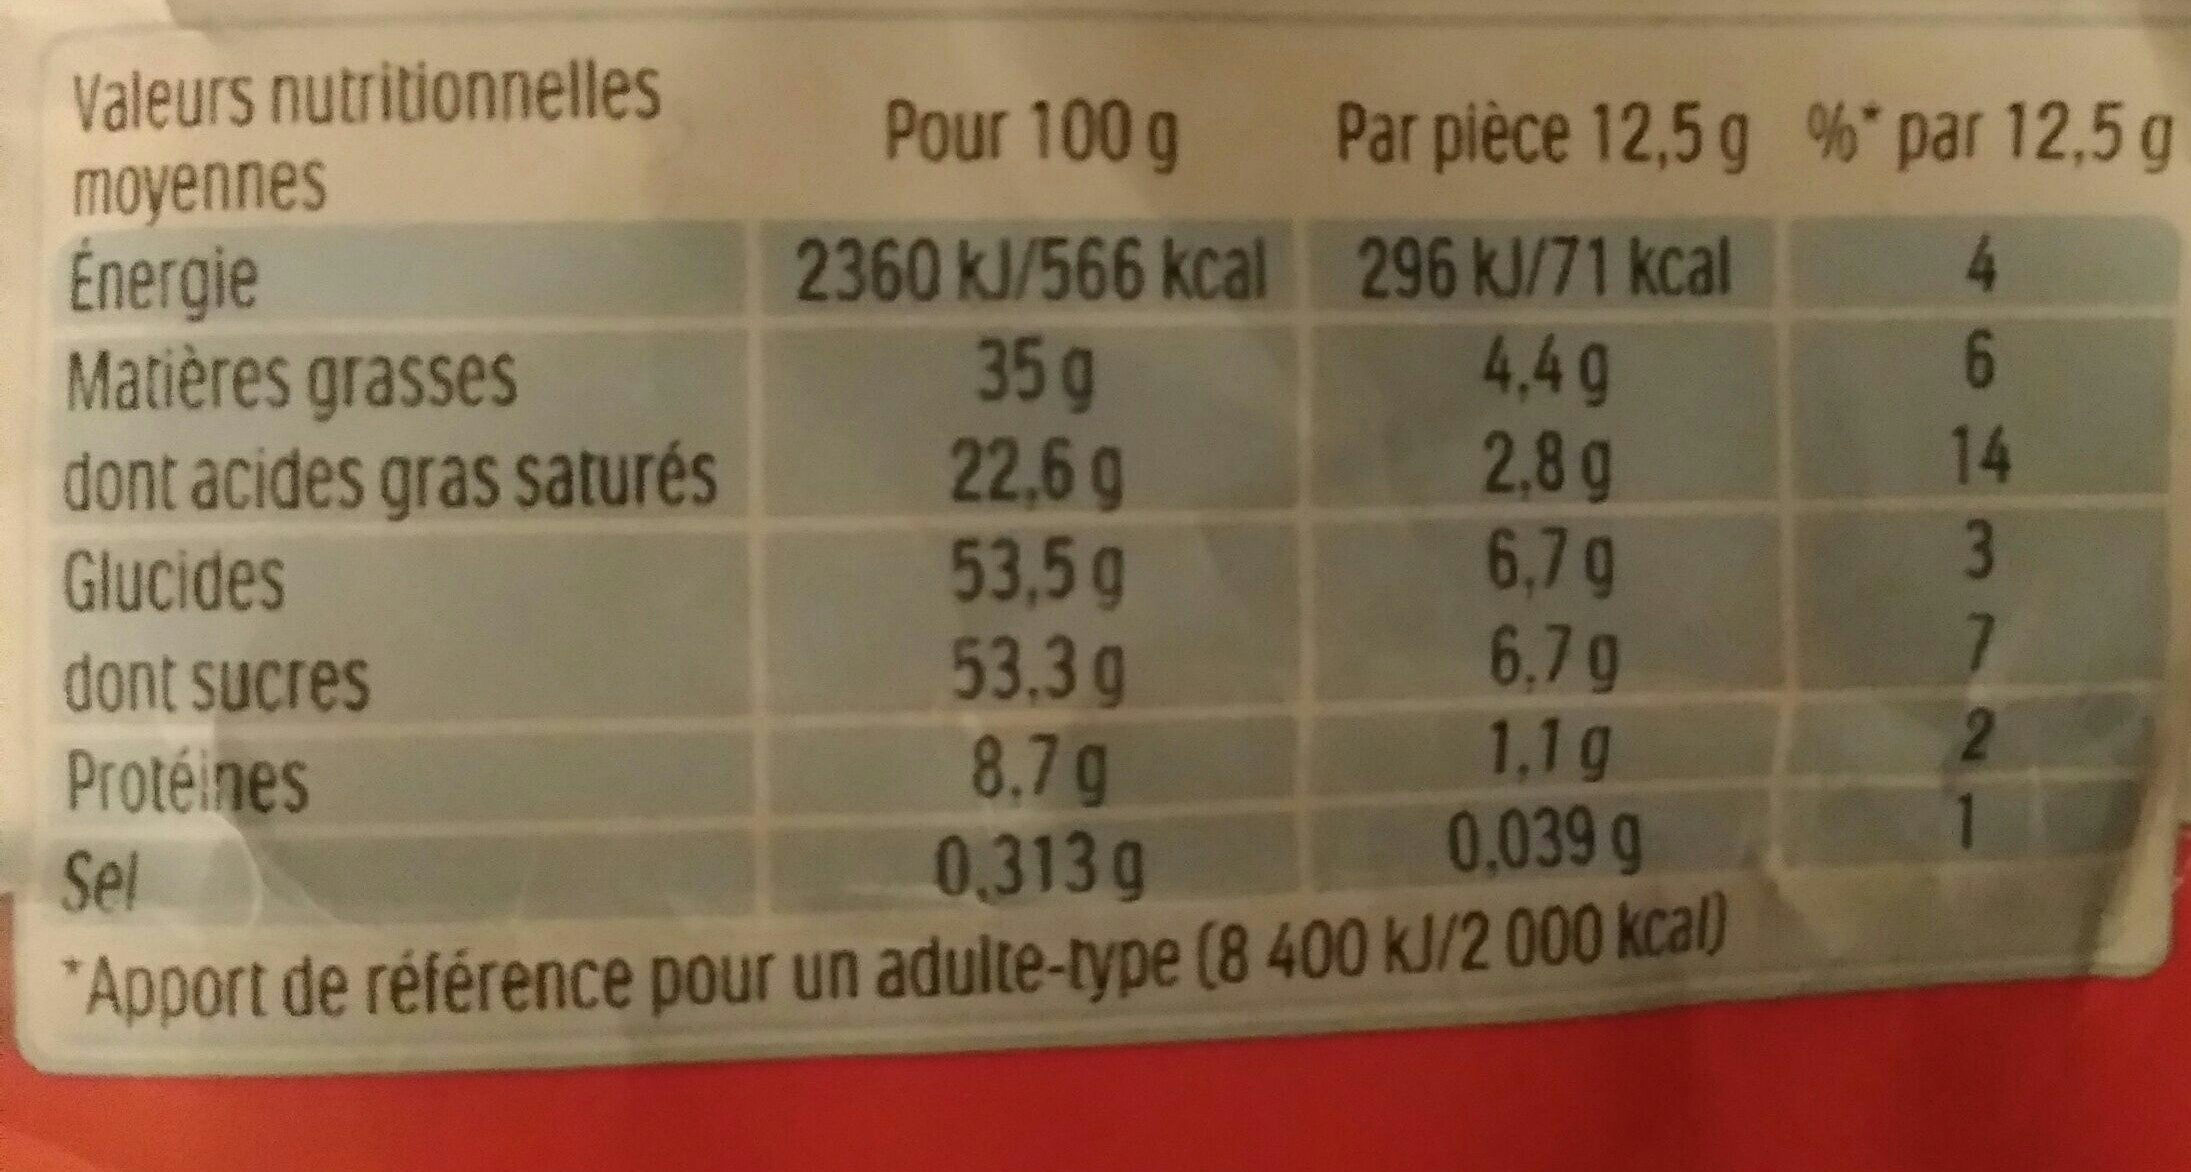 Kinder chocolat - Informations nutritionnelles